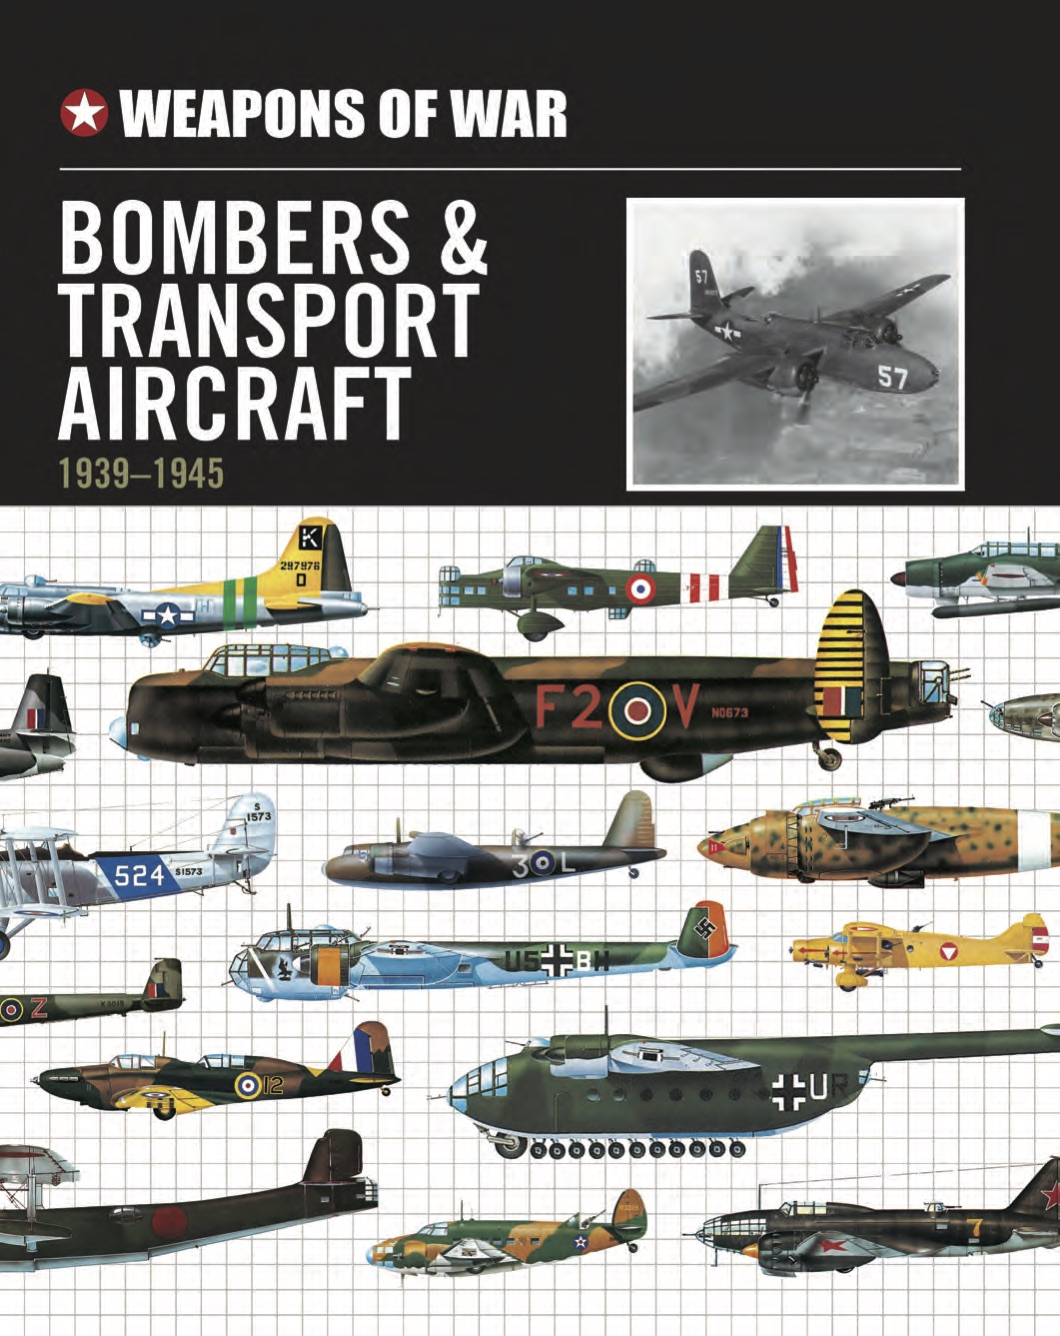 Bombers and Transport Aircraft 1939 to 1945 – Weapons of War